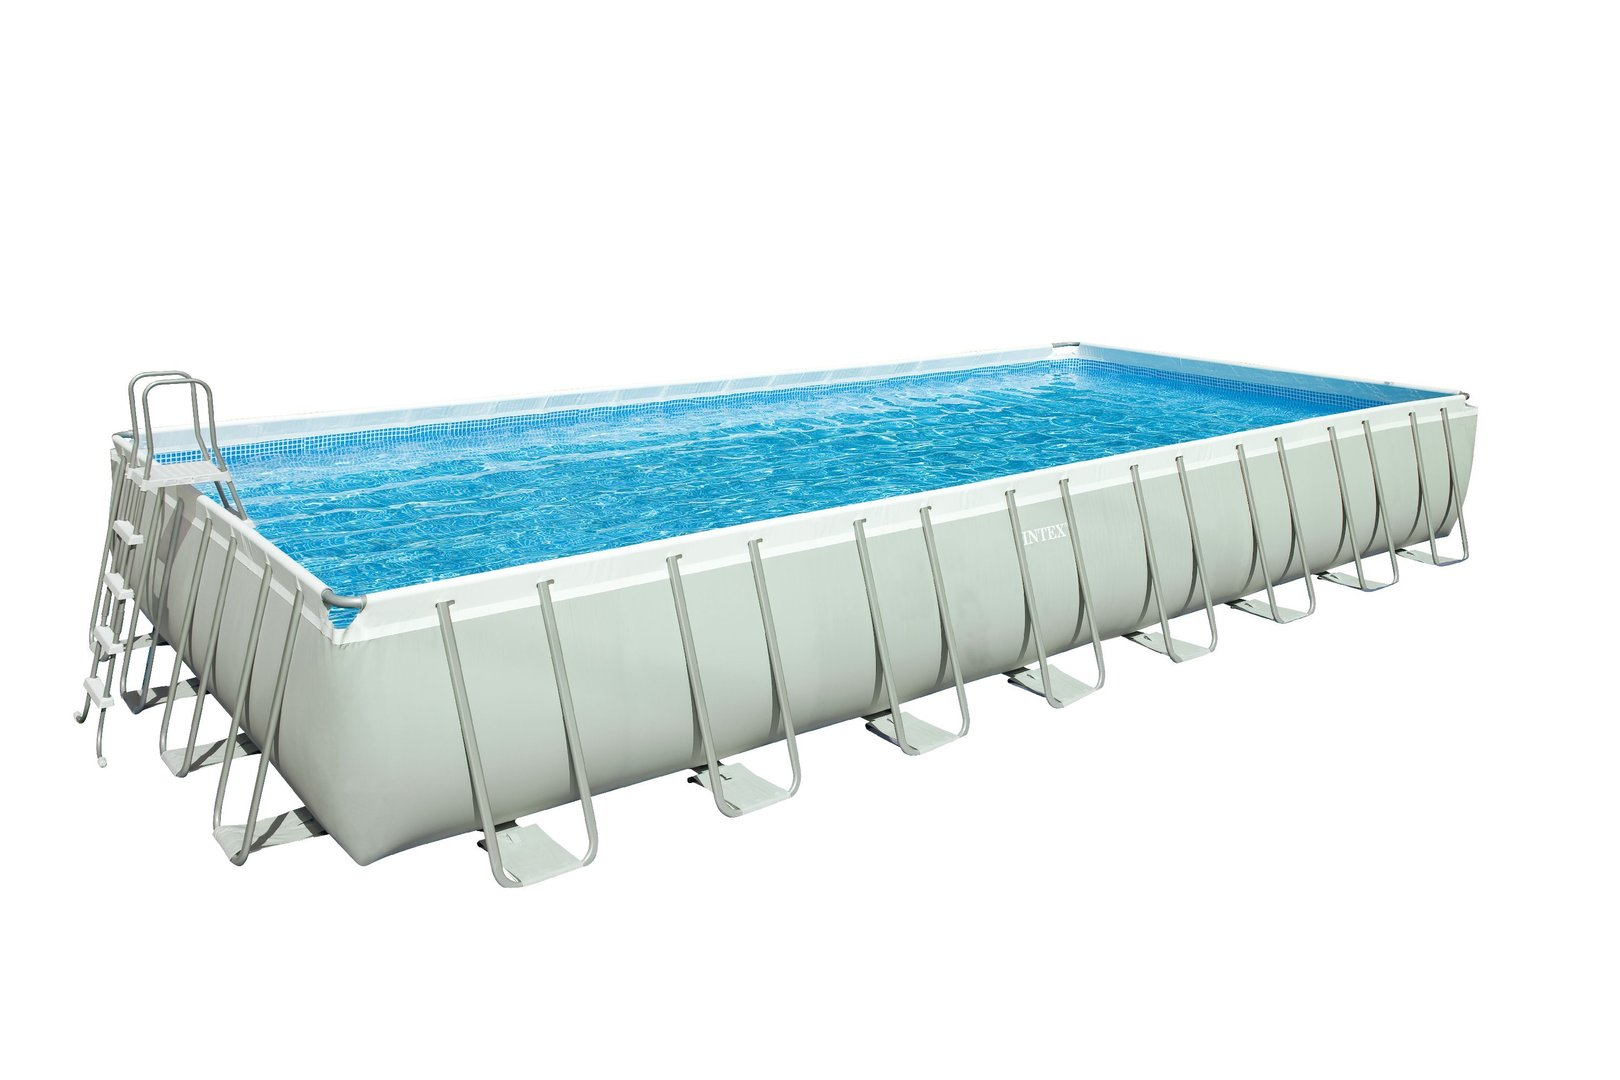 Intex Poolzubehör Bodensauger Quotultra Quadra Quot Frame Pool Set Von Intex Bei Bavchem